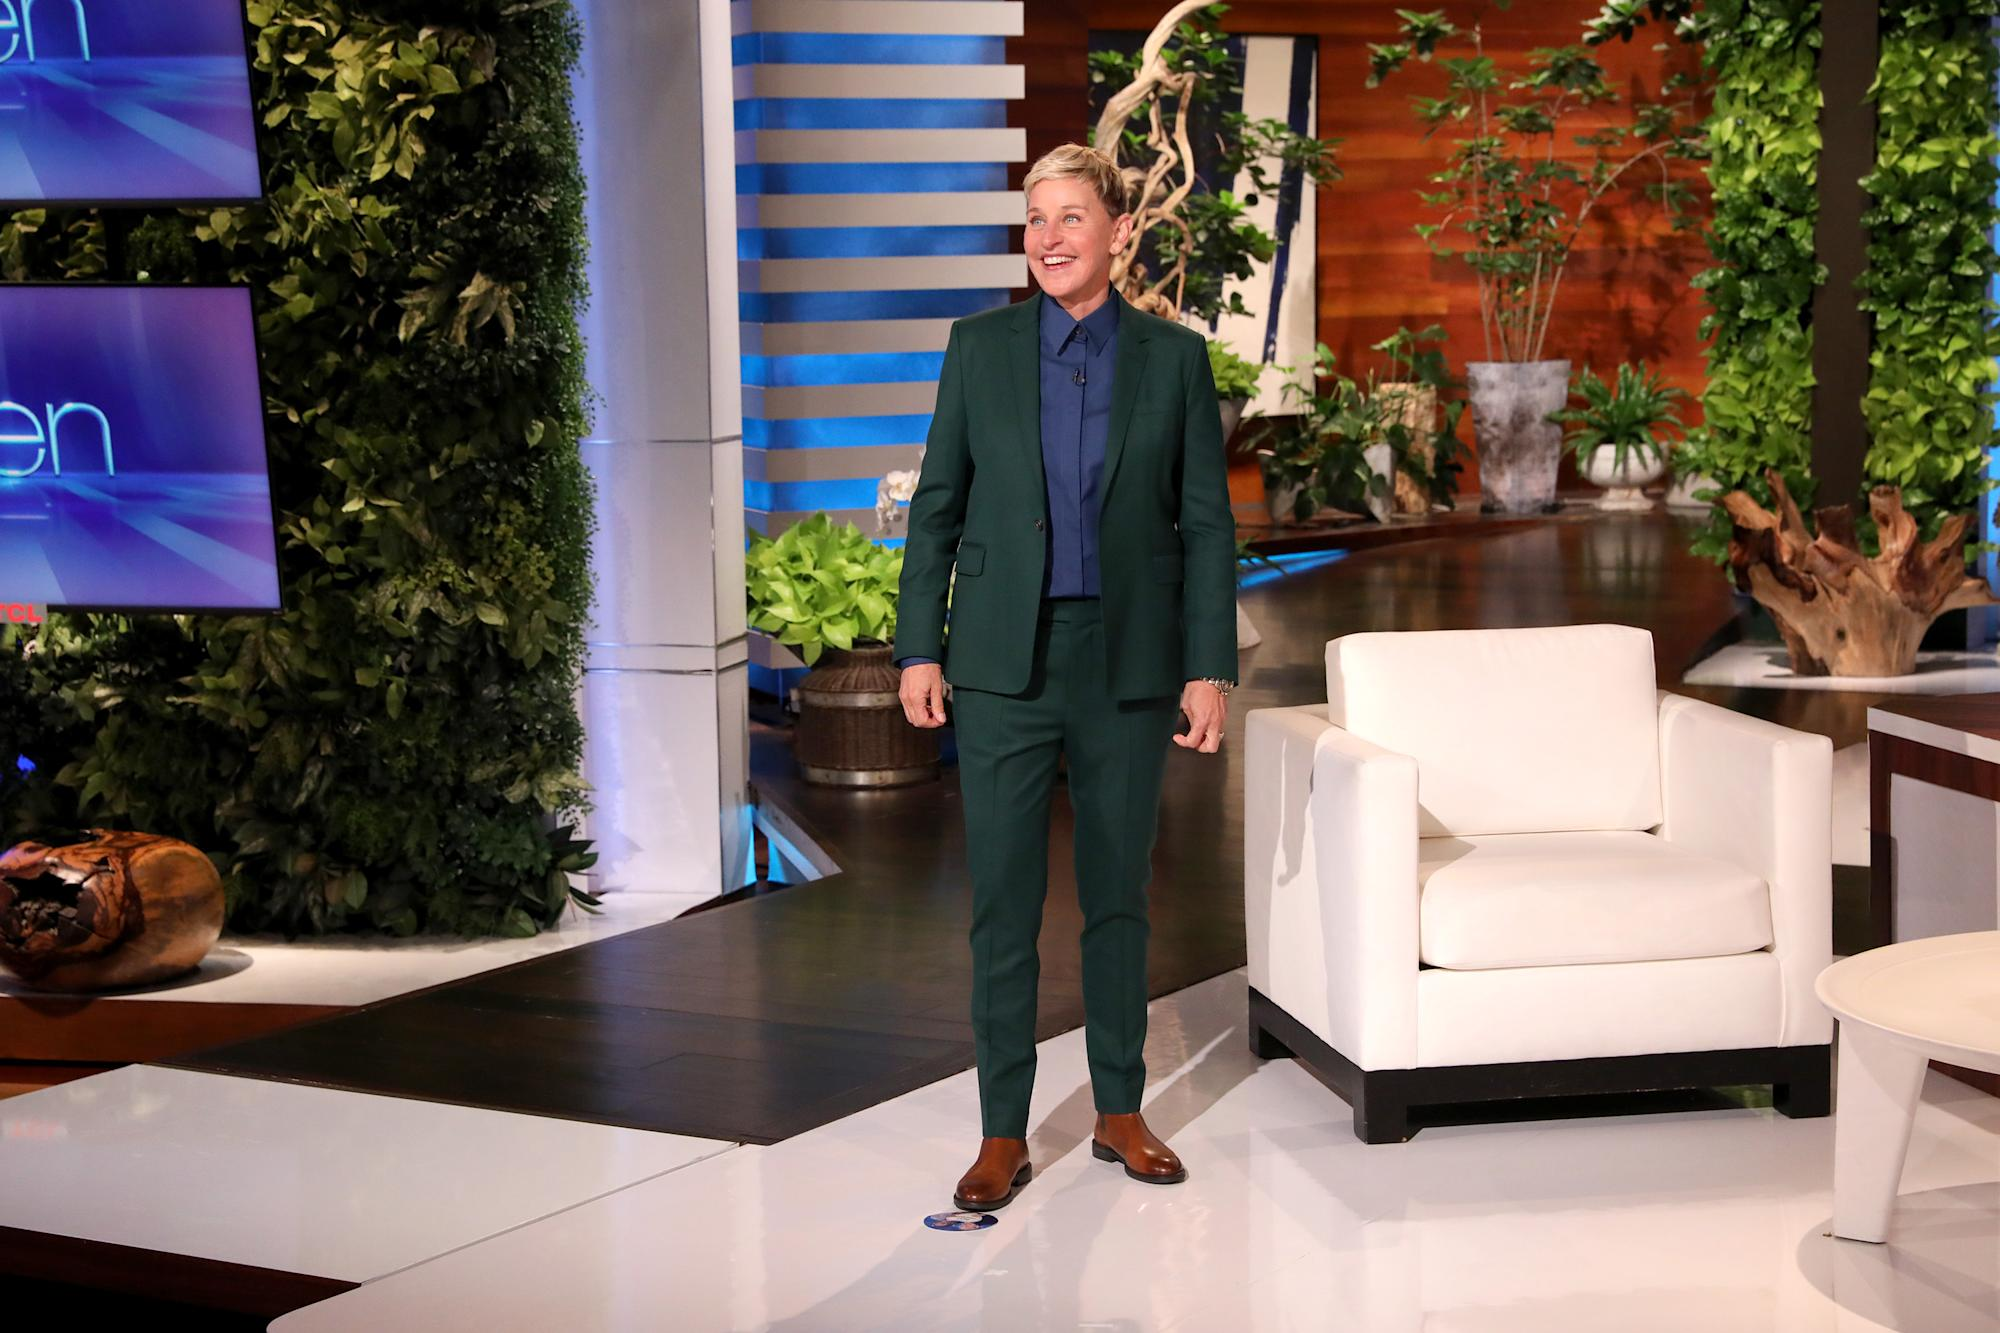 Ellen DeGeneres says the toxic workplace scandal felt 'coordinated' and 'very misogynistic'